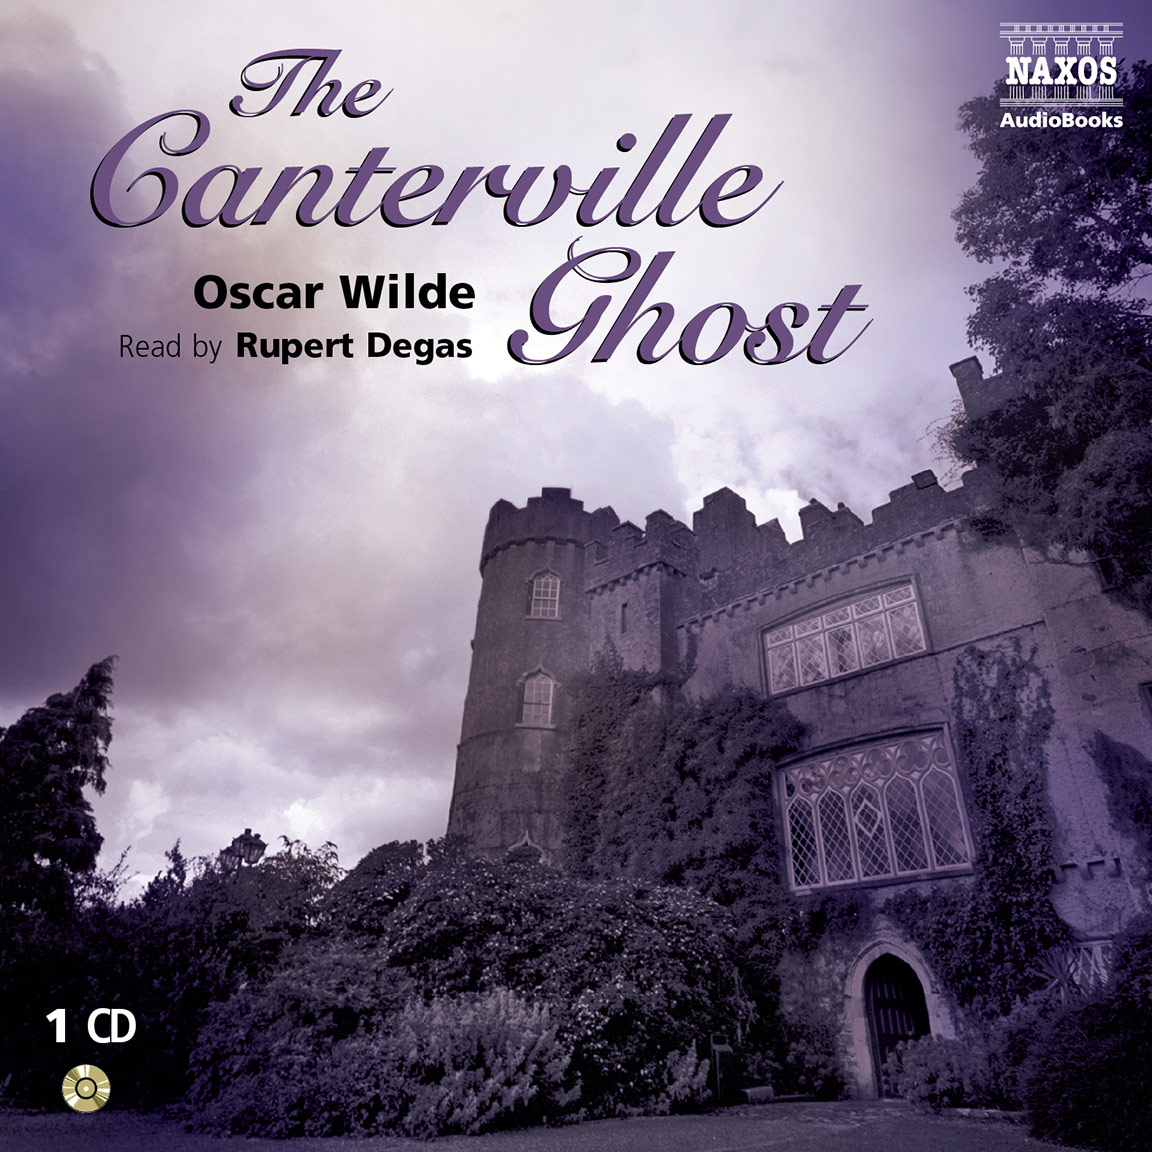 Canterville Ghost, The (unabridged) – Naxos AudioBooks